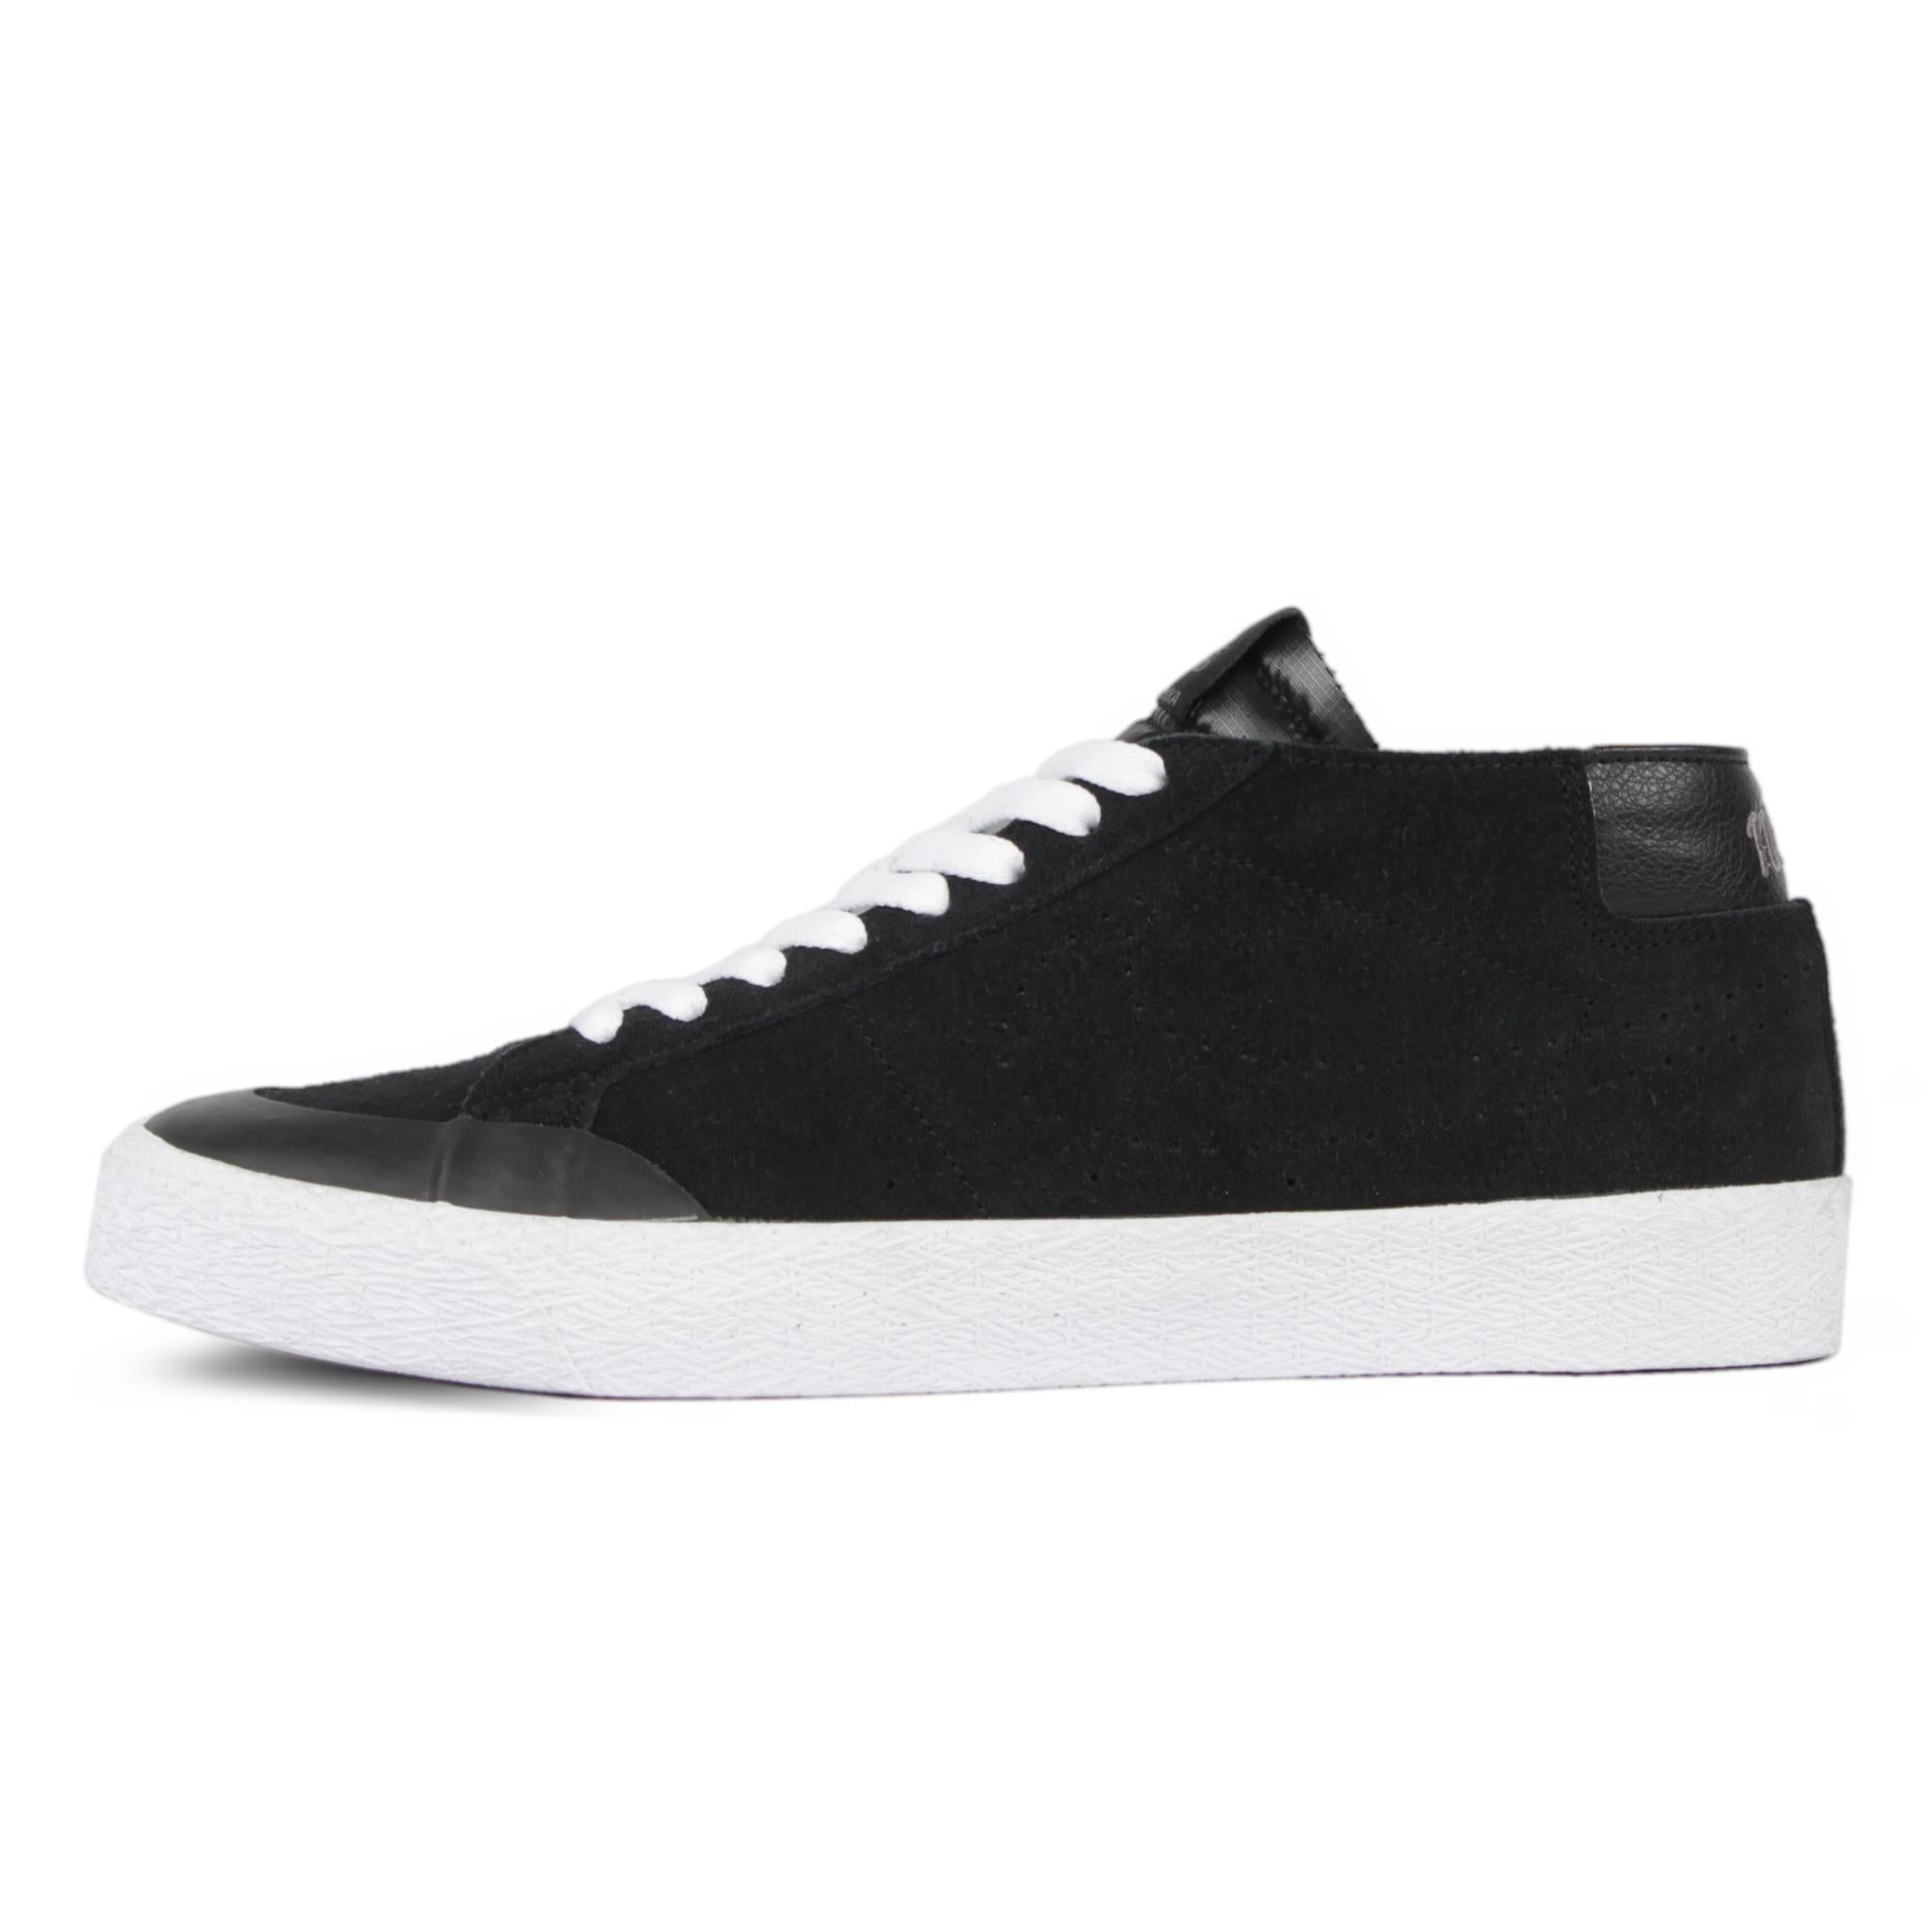 100% authentic f34e5 293c7 NIKE SB BLAZER CHUKKA XT BLACK / BLACK / WHITE